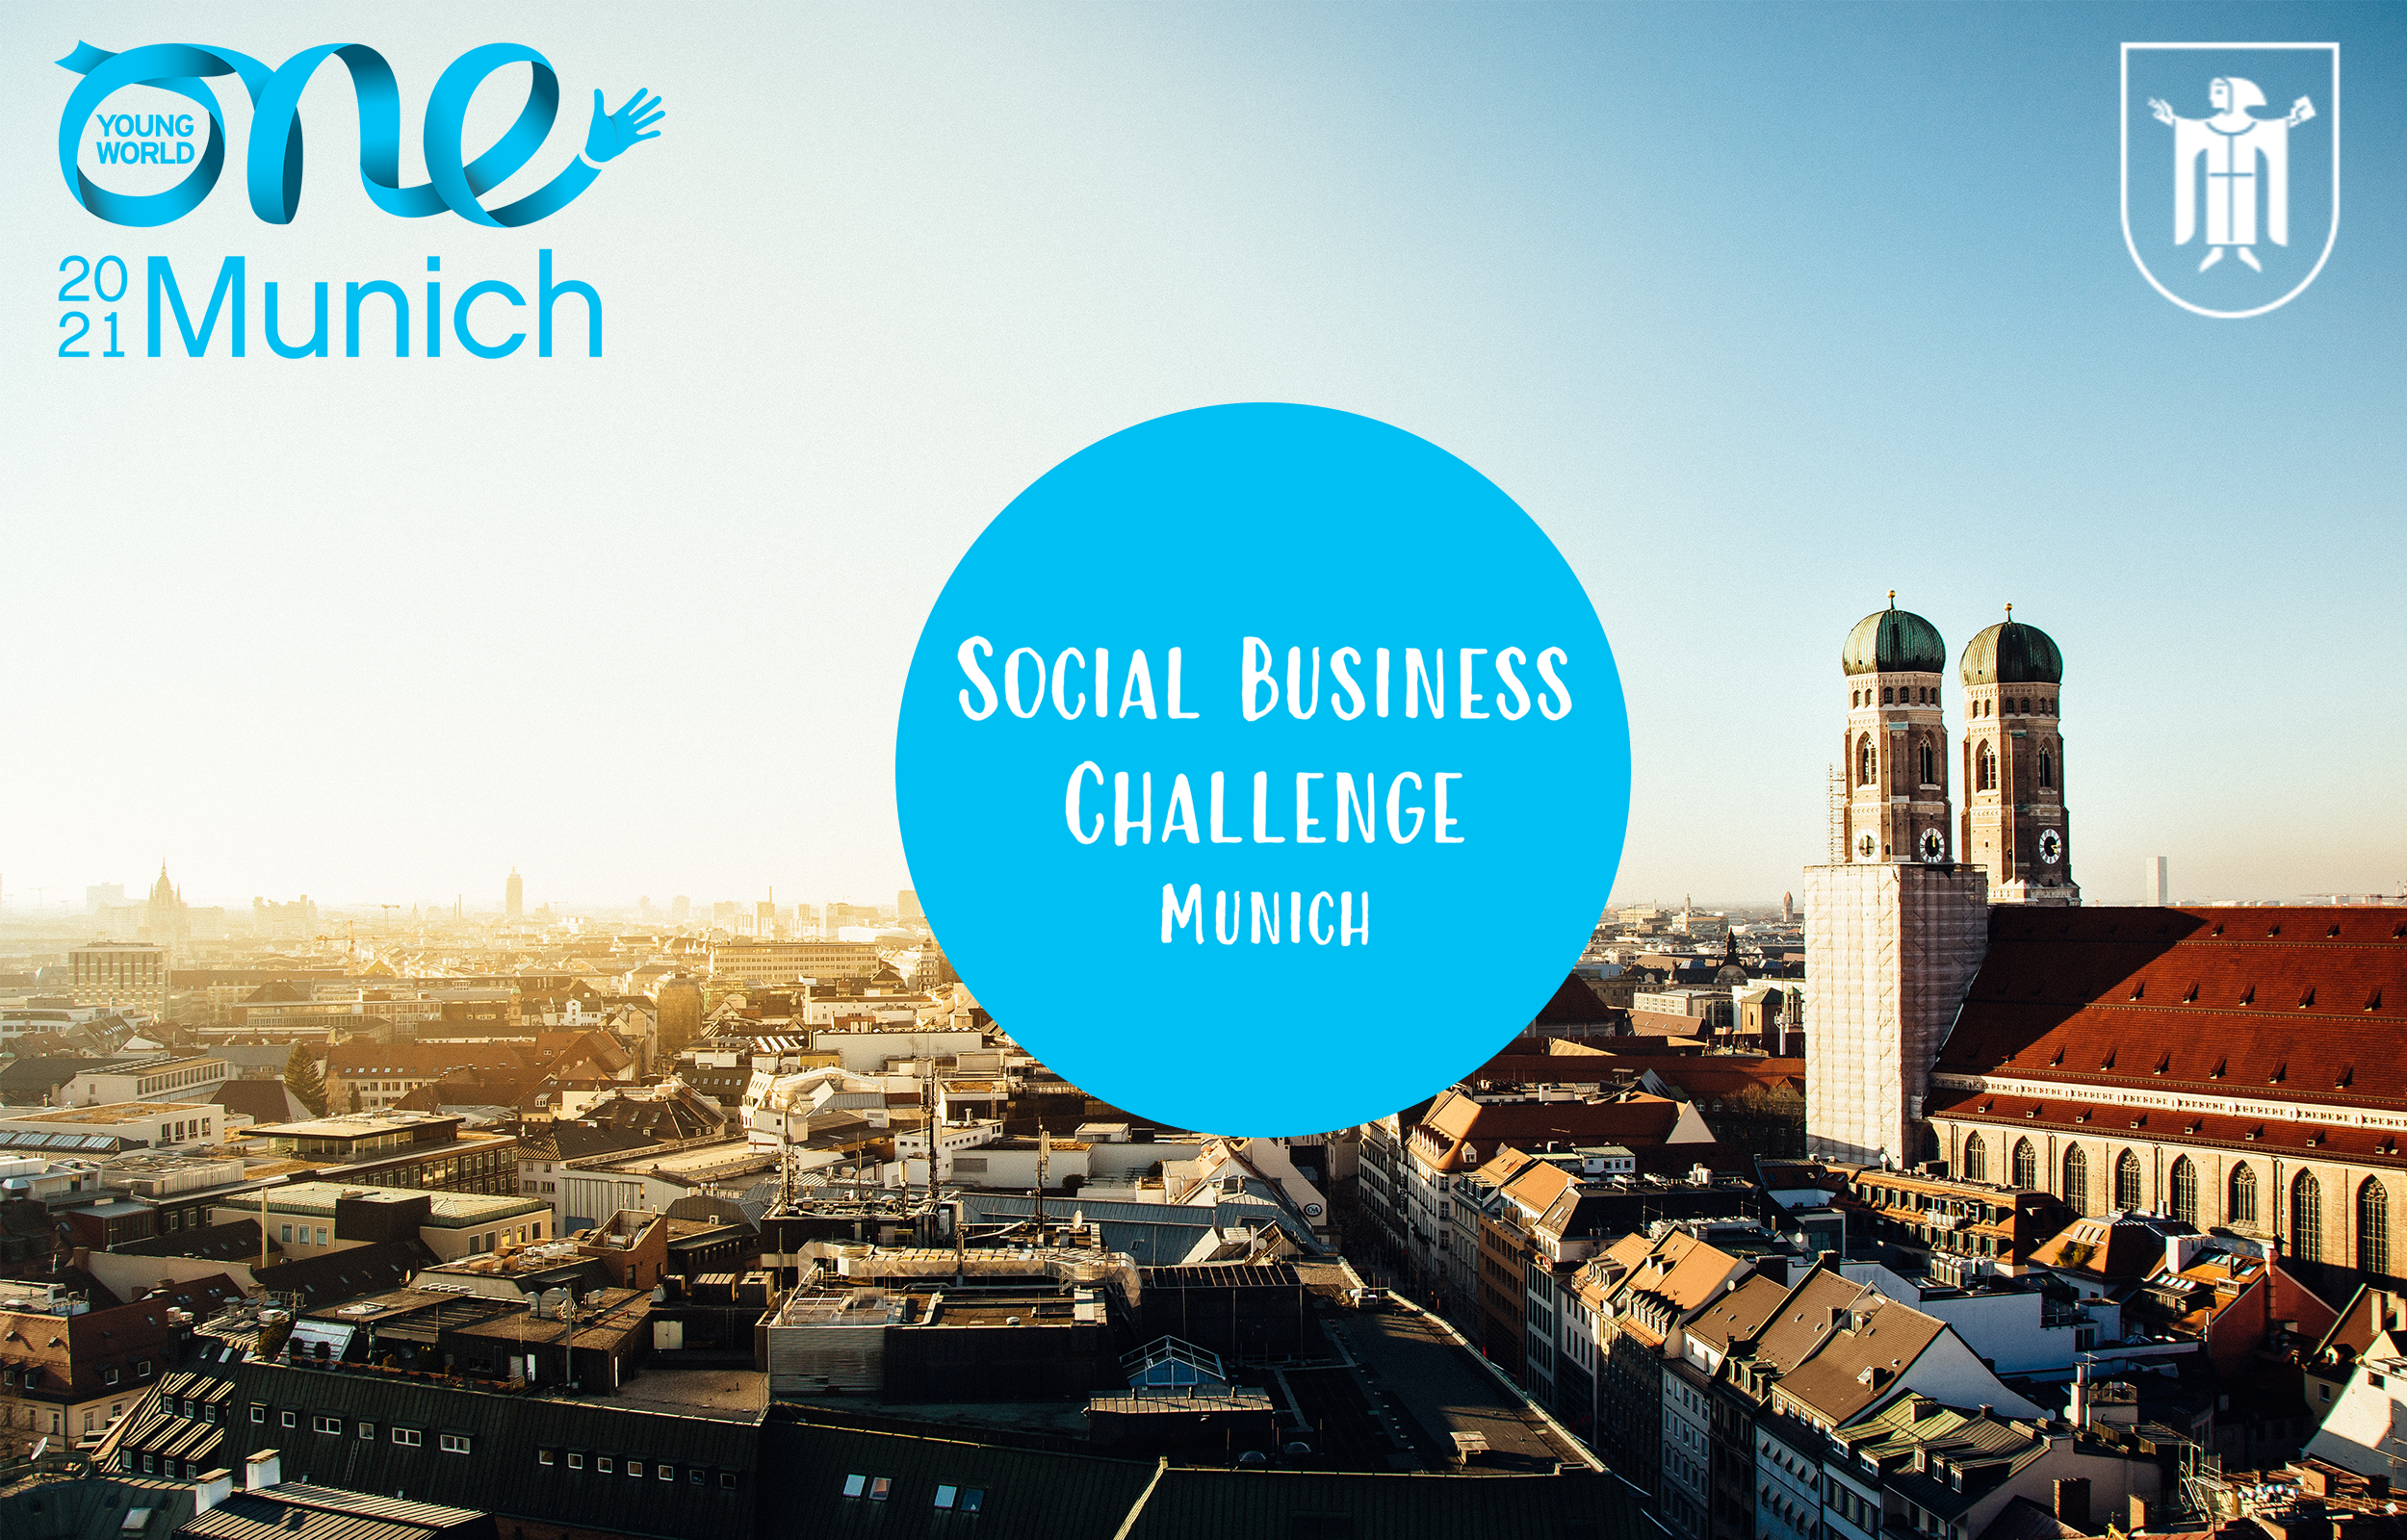 Social Business Challenge Image